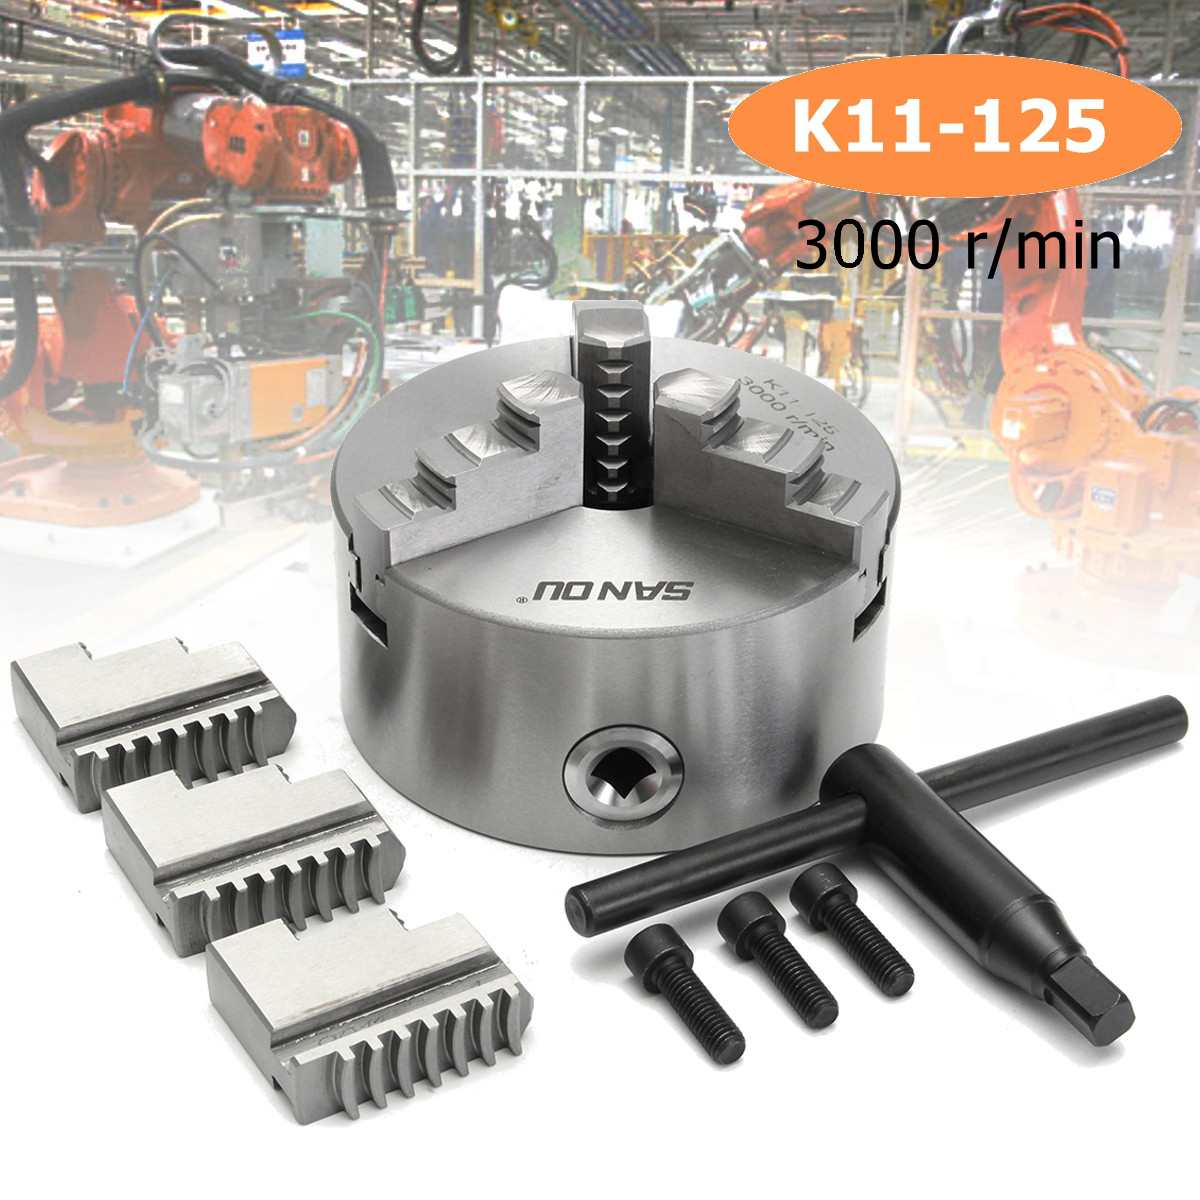 K11-200 3 Jaw Lathe Chuck 200mm Self Centering for Drilling Milling Tool